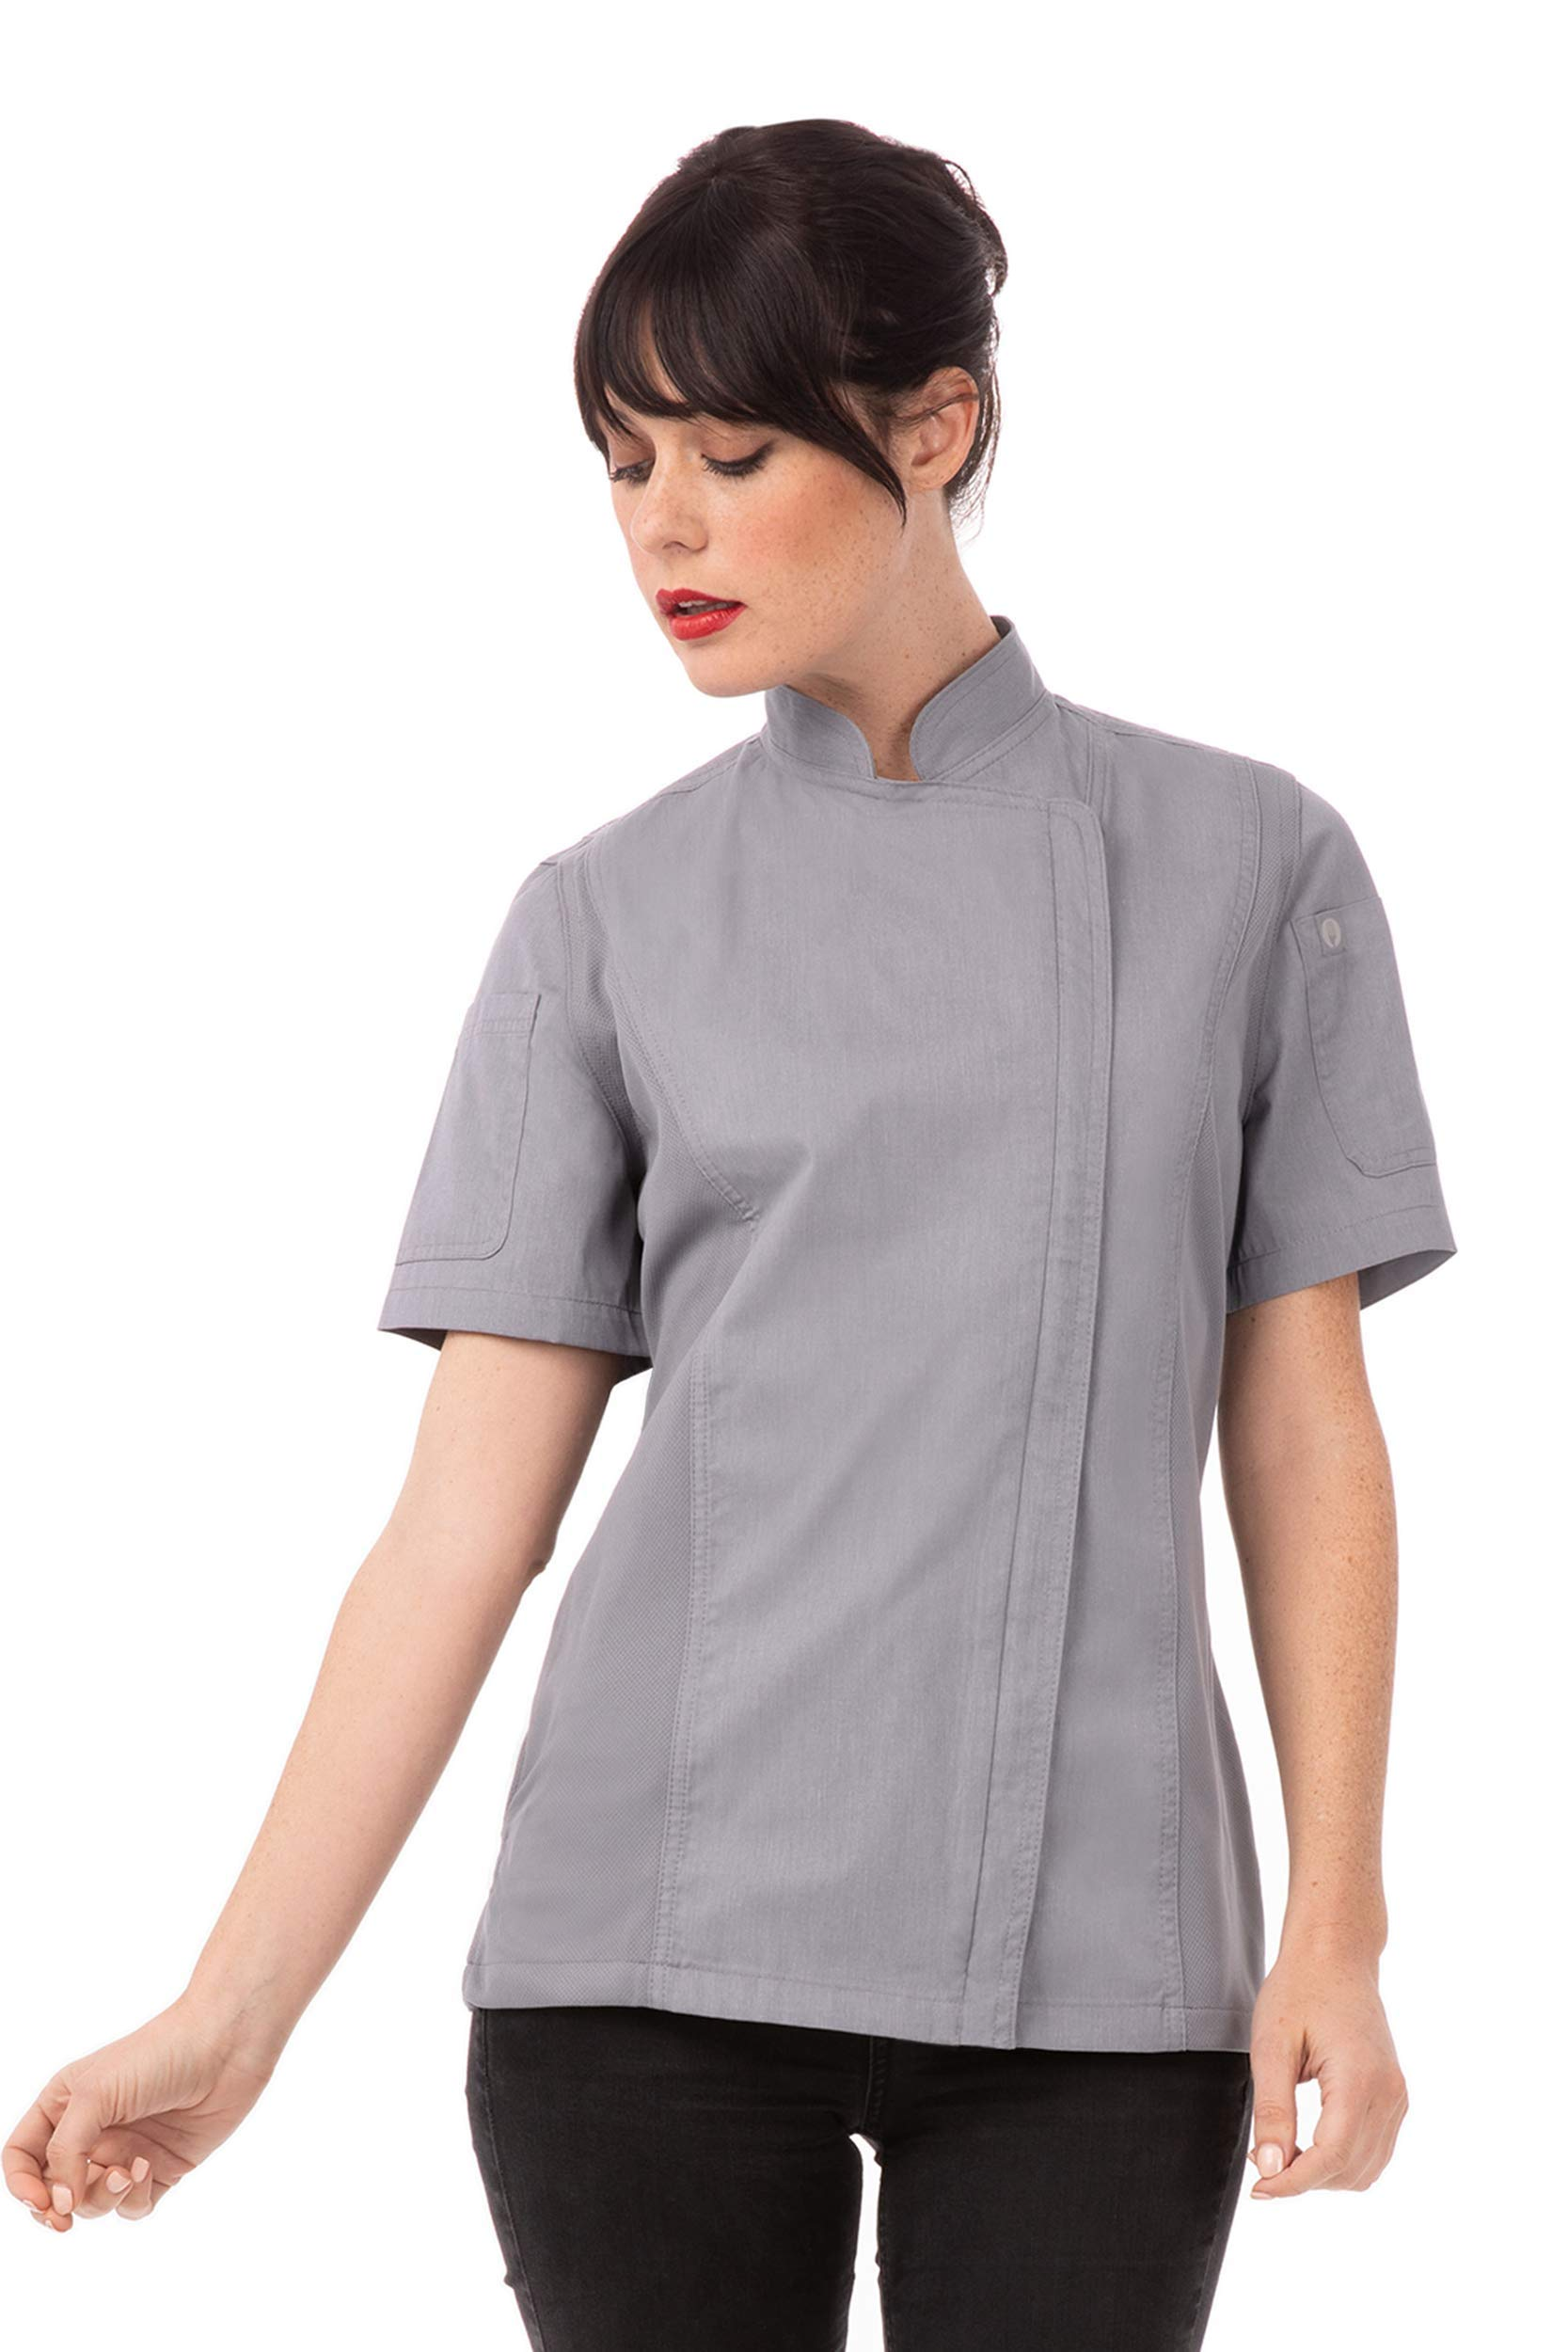 Chef Works Women's Springfield Chef Coat, Gray, Small by Chef Works